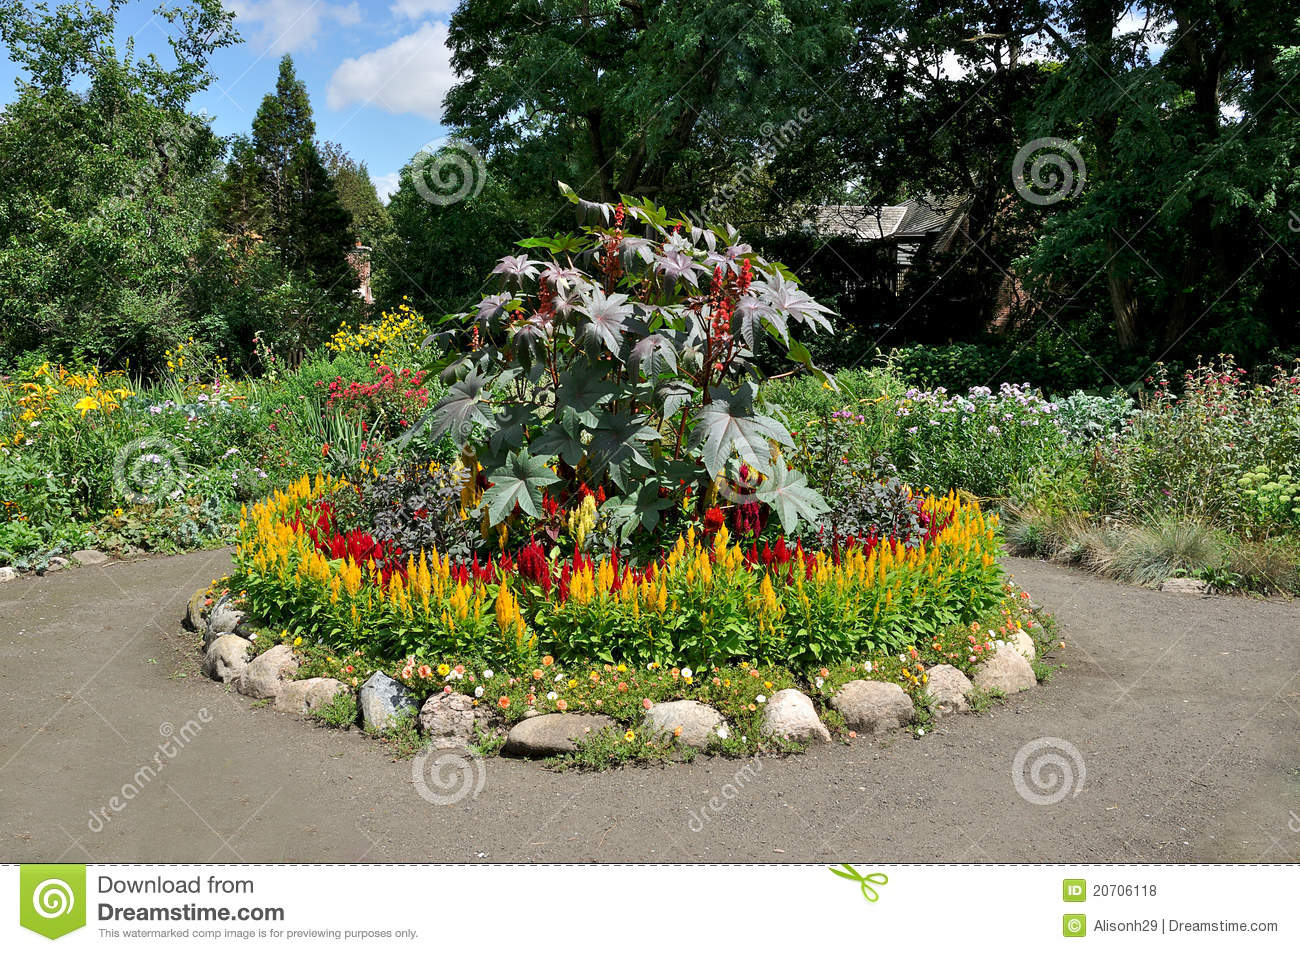 Circular flower bed royalty free stock photos image for Round flower garden designs